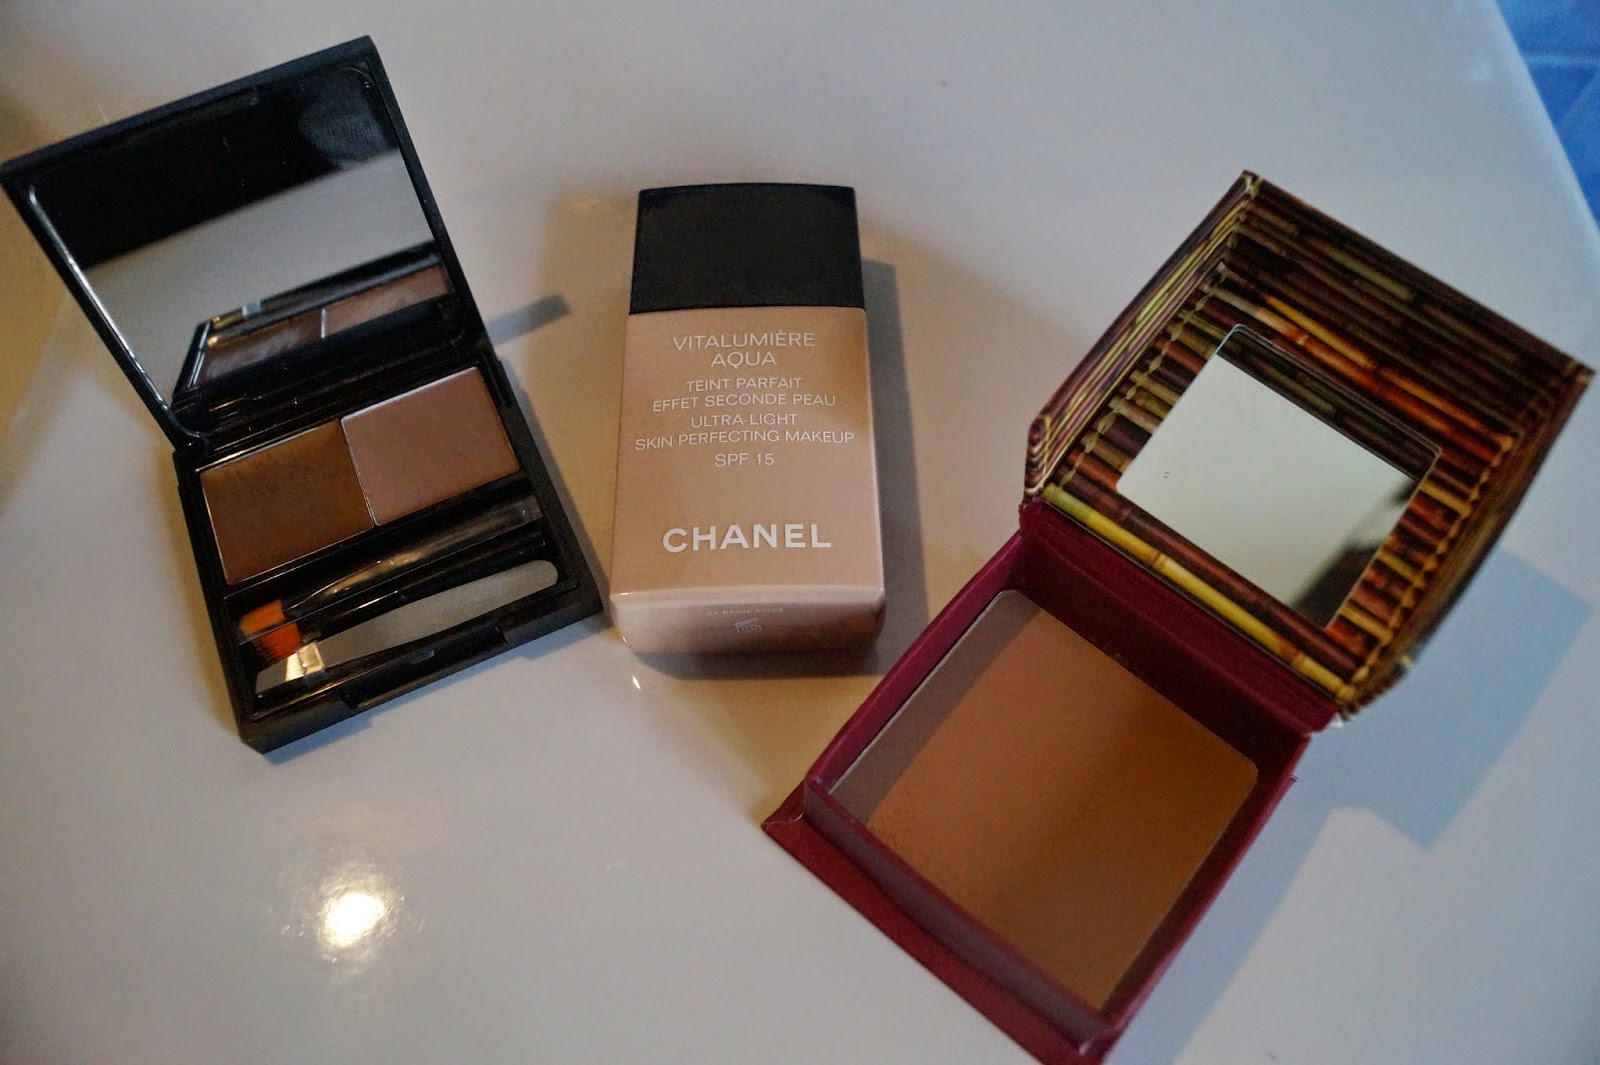 ea4105421ab Let's just say that this month, I have aquired quite a bit of beauty stuff,  I'll let you discover the extent of the damages. Chanel ...